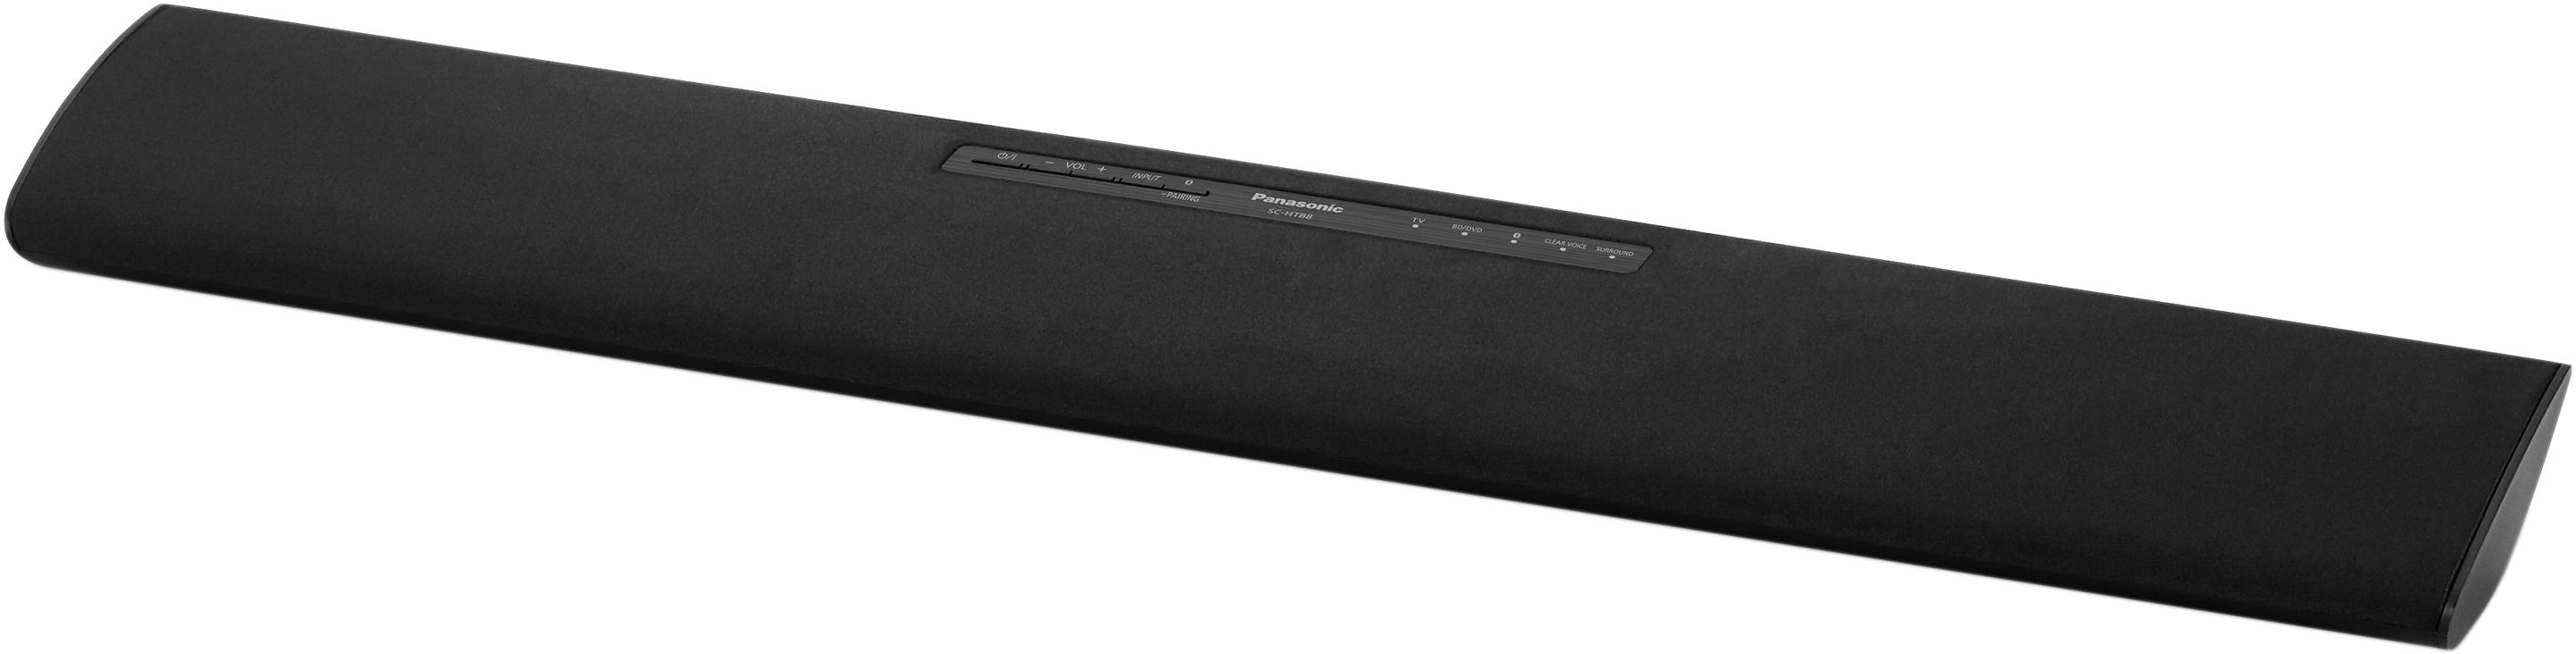 Panasonic SC-HTB8 2.0 Soundbar (80 W, Bluetooth)